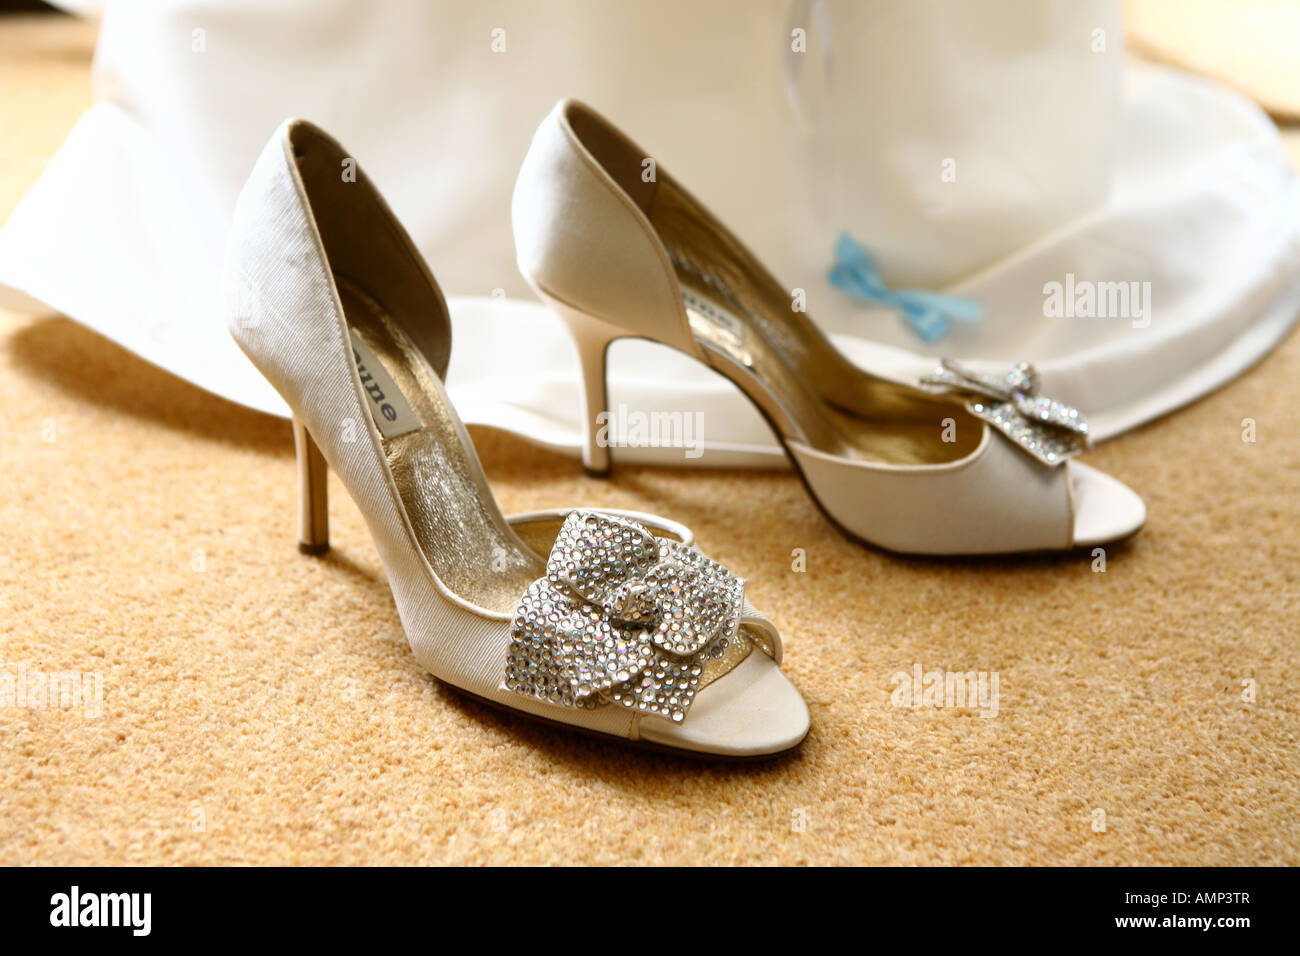 79b1649c43aaa0 Closeup of white high heeled wedding shoes with embroidered beaded  decoration and with bottom of white wedding dress behind